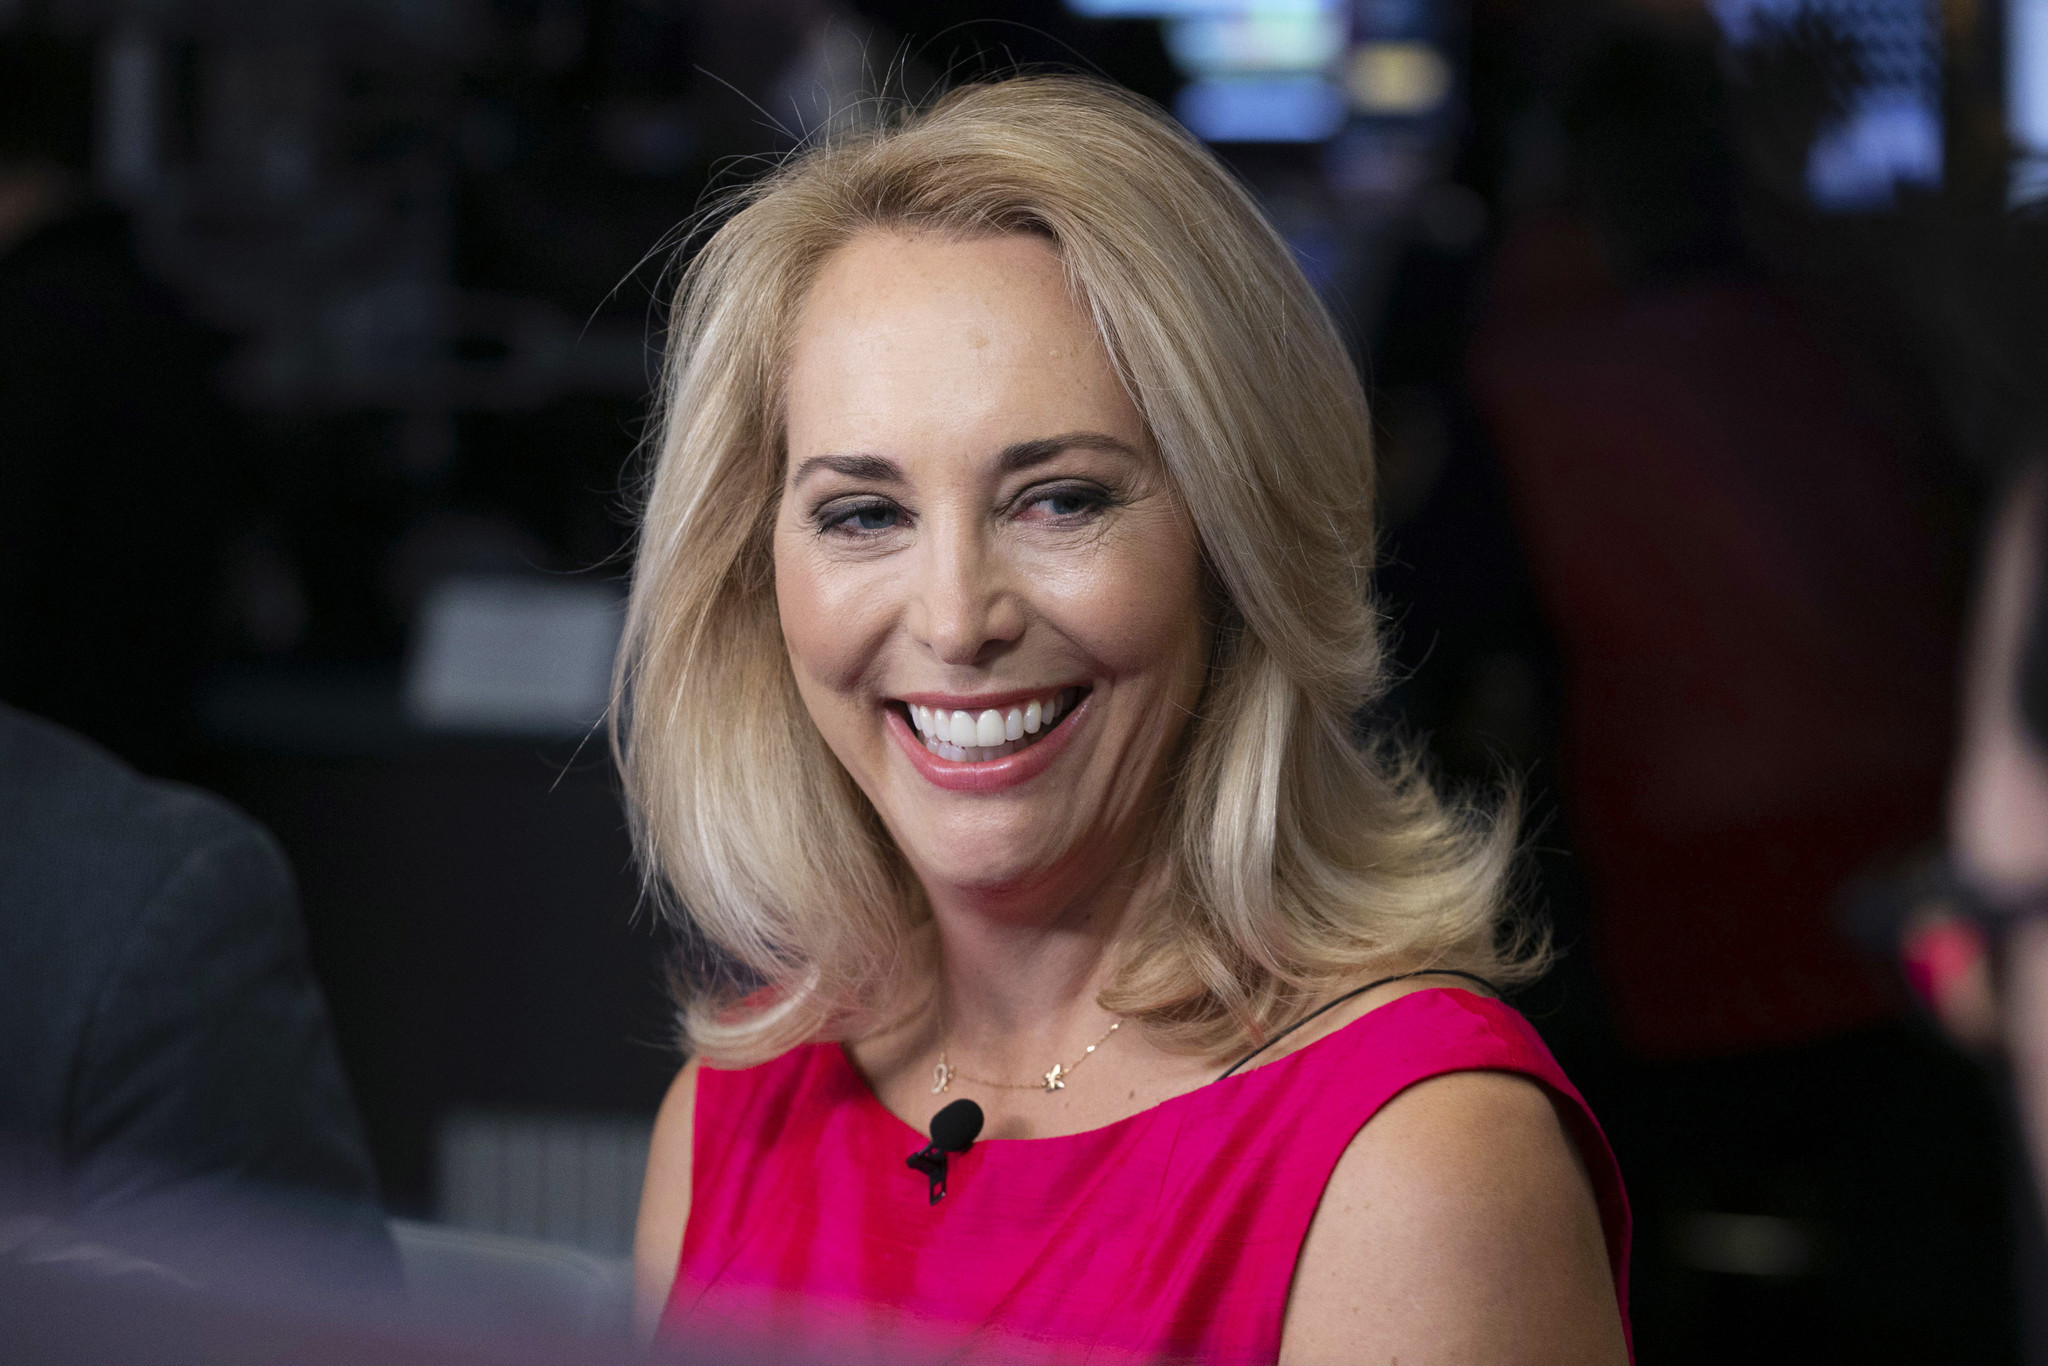 Fast and furious Valerie Plame stars in Hollywood-style video for New Mexico congressional campaign